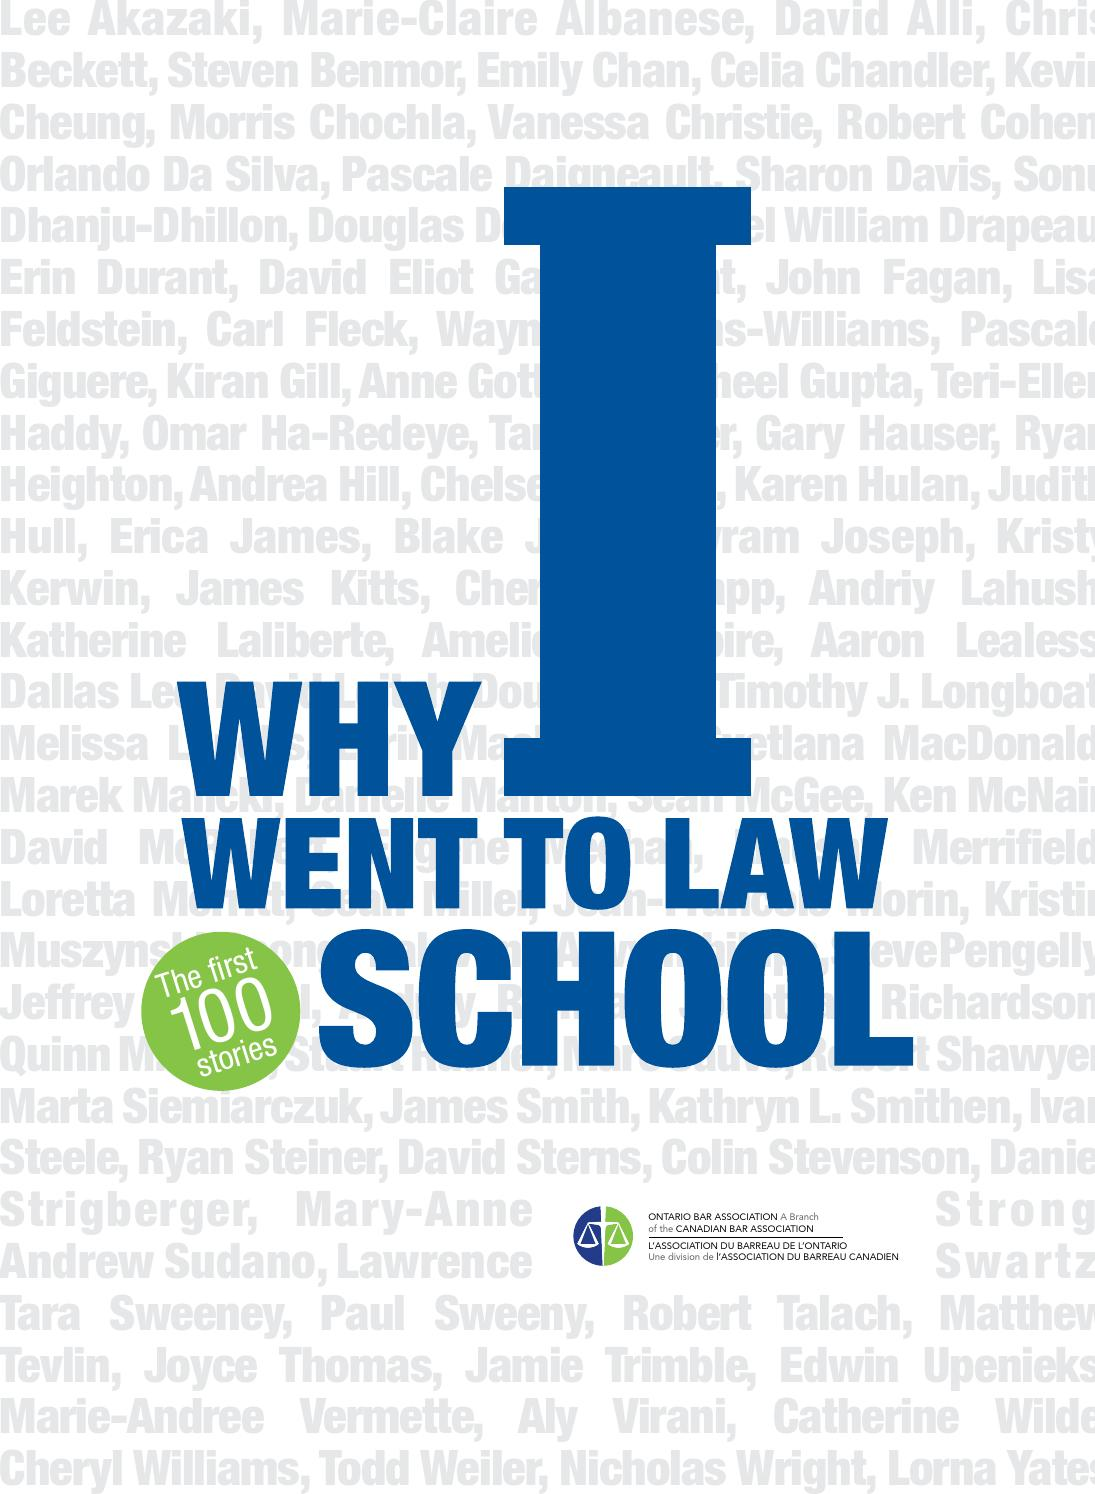 Why I Went To Law School: The First 100 Stories by Ontario Bar ...